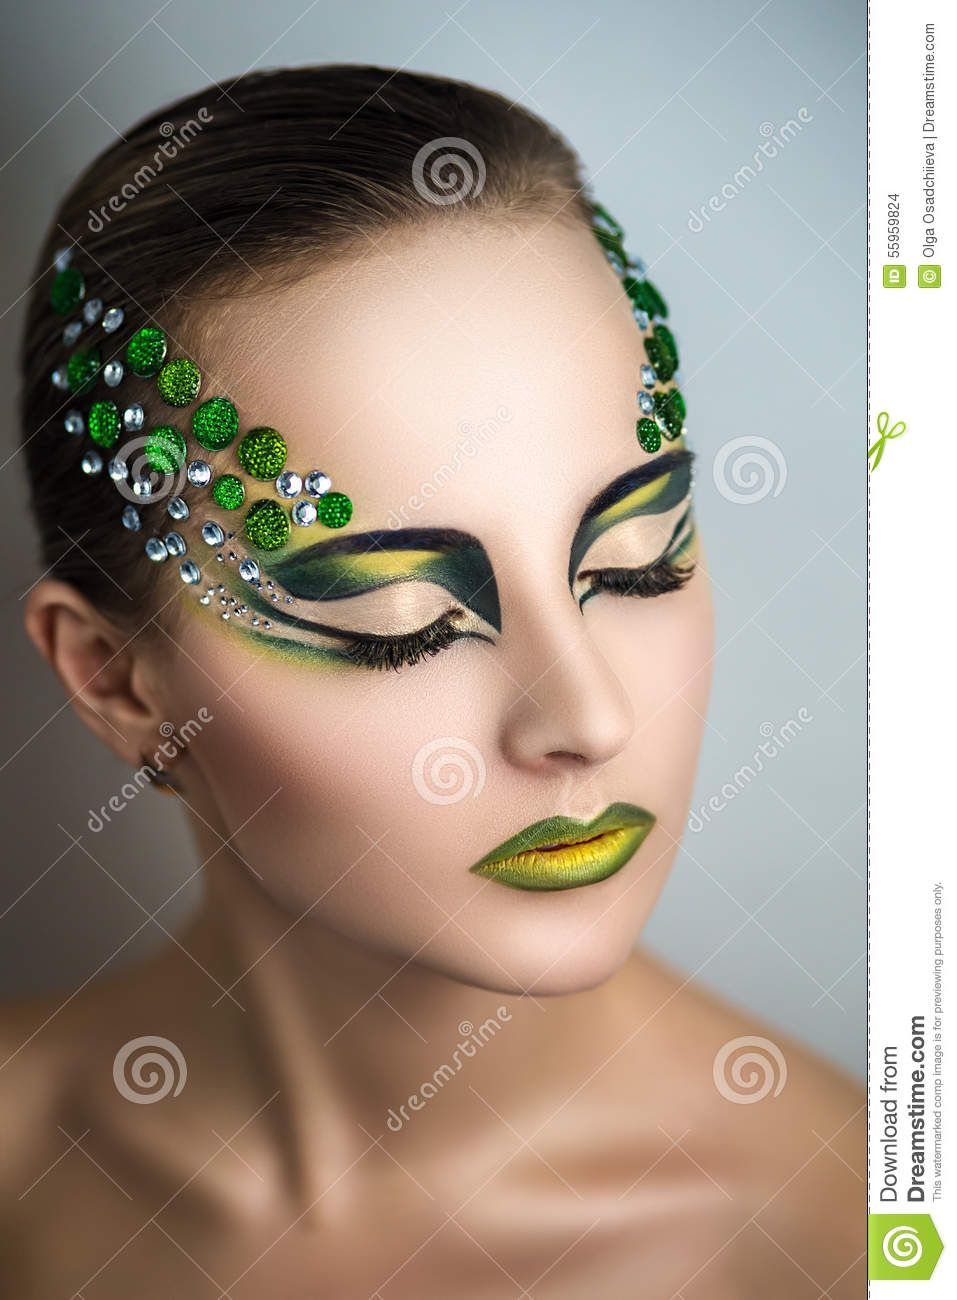 Woman With Green Make Up Download From Over 42 Million